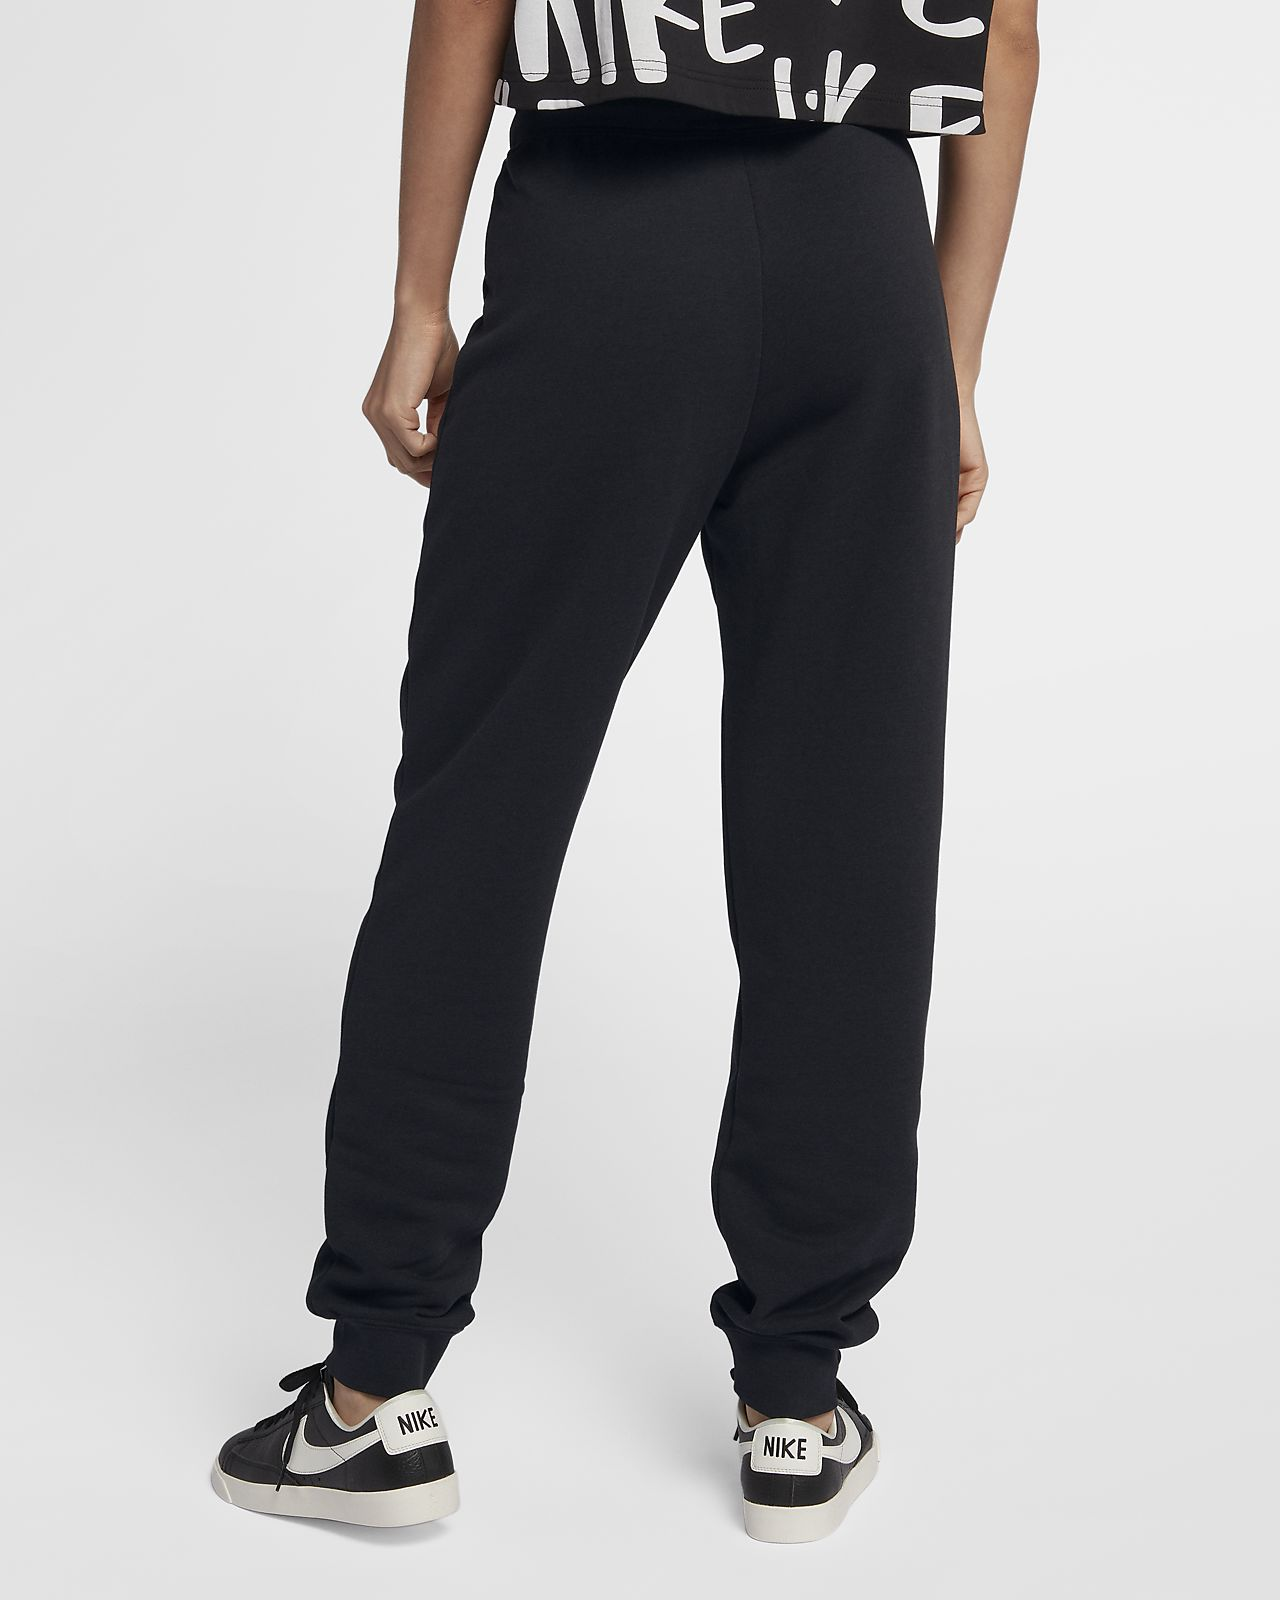 122d88079ce5 Low Resolution Nike Sportswear Rally Women s Pants Nike Sportswear Rally  Women s Pants